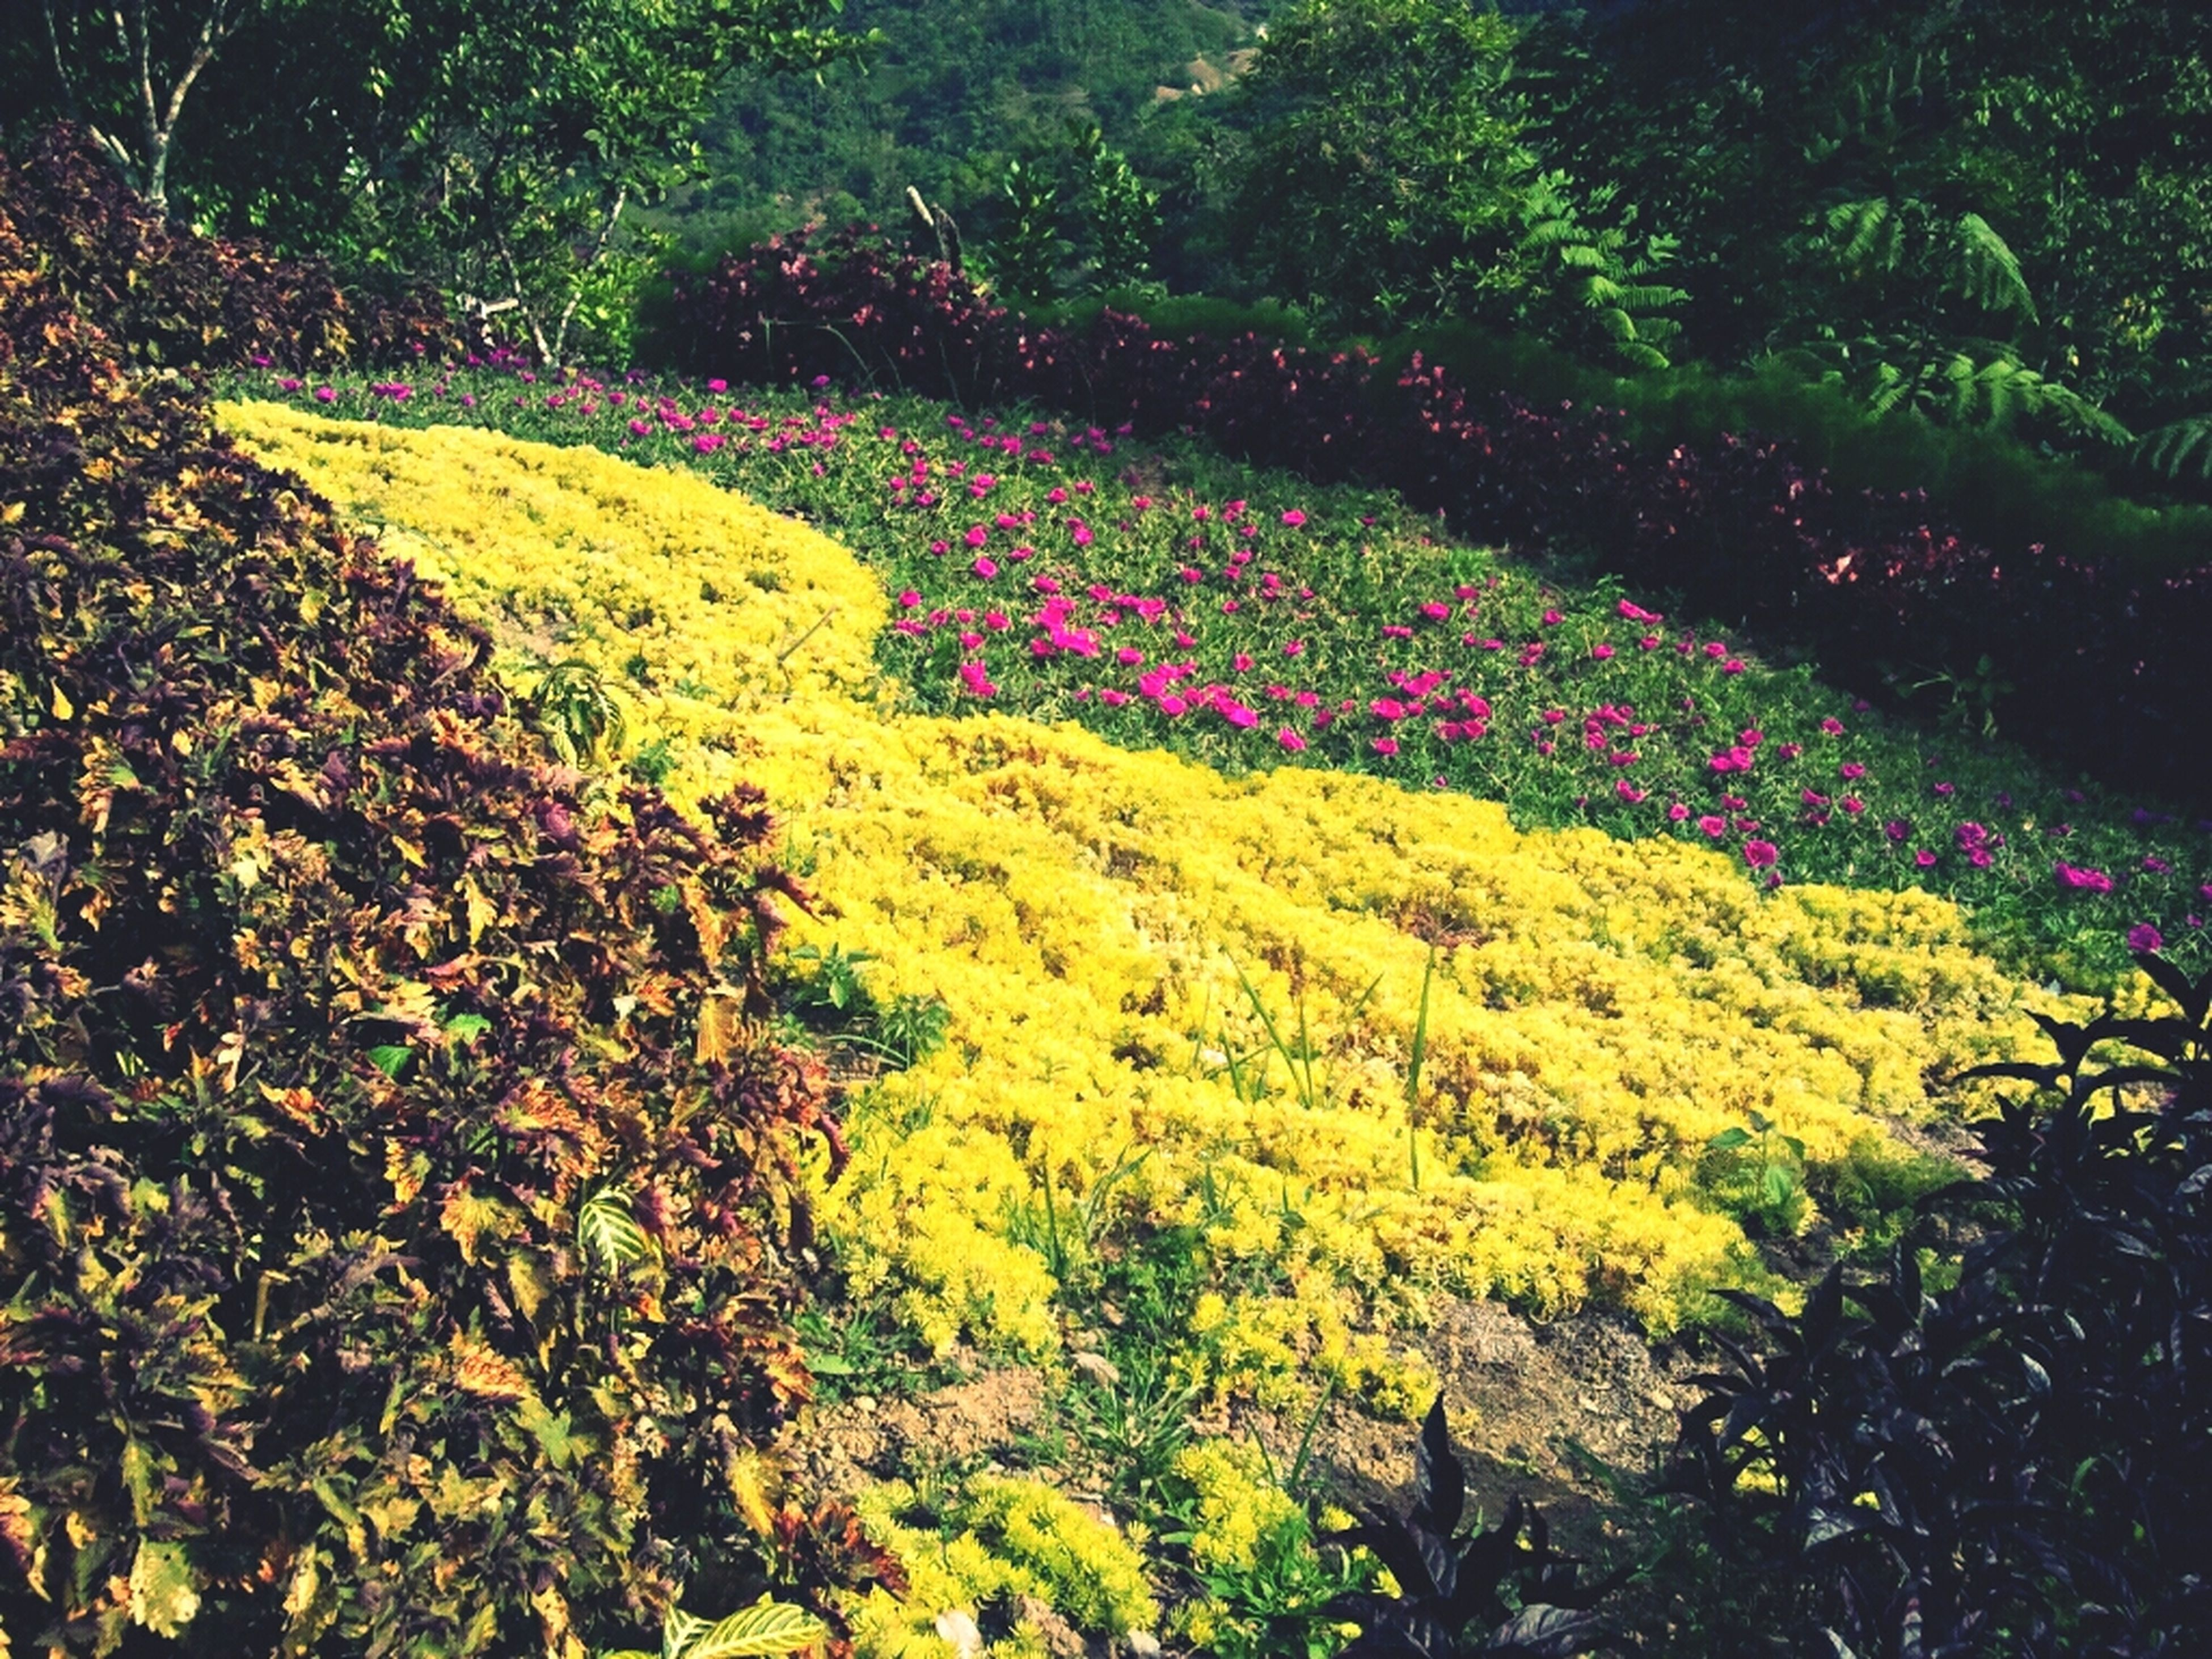 flower, growth, tree, yellow, beauty in nature, high angle view, nature, plant, tranquility, park - man made space, green color, leaf, multi colored, outdoors, autumn, freshness, tranquil scene, day, season, lush foliage